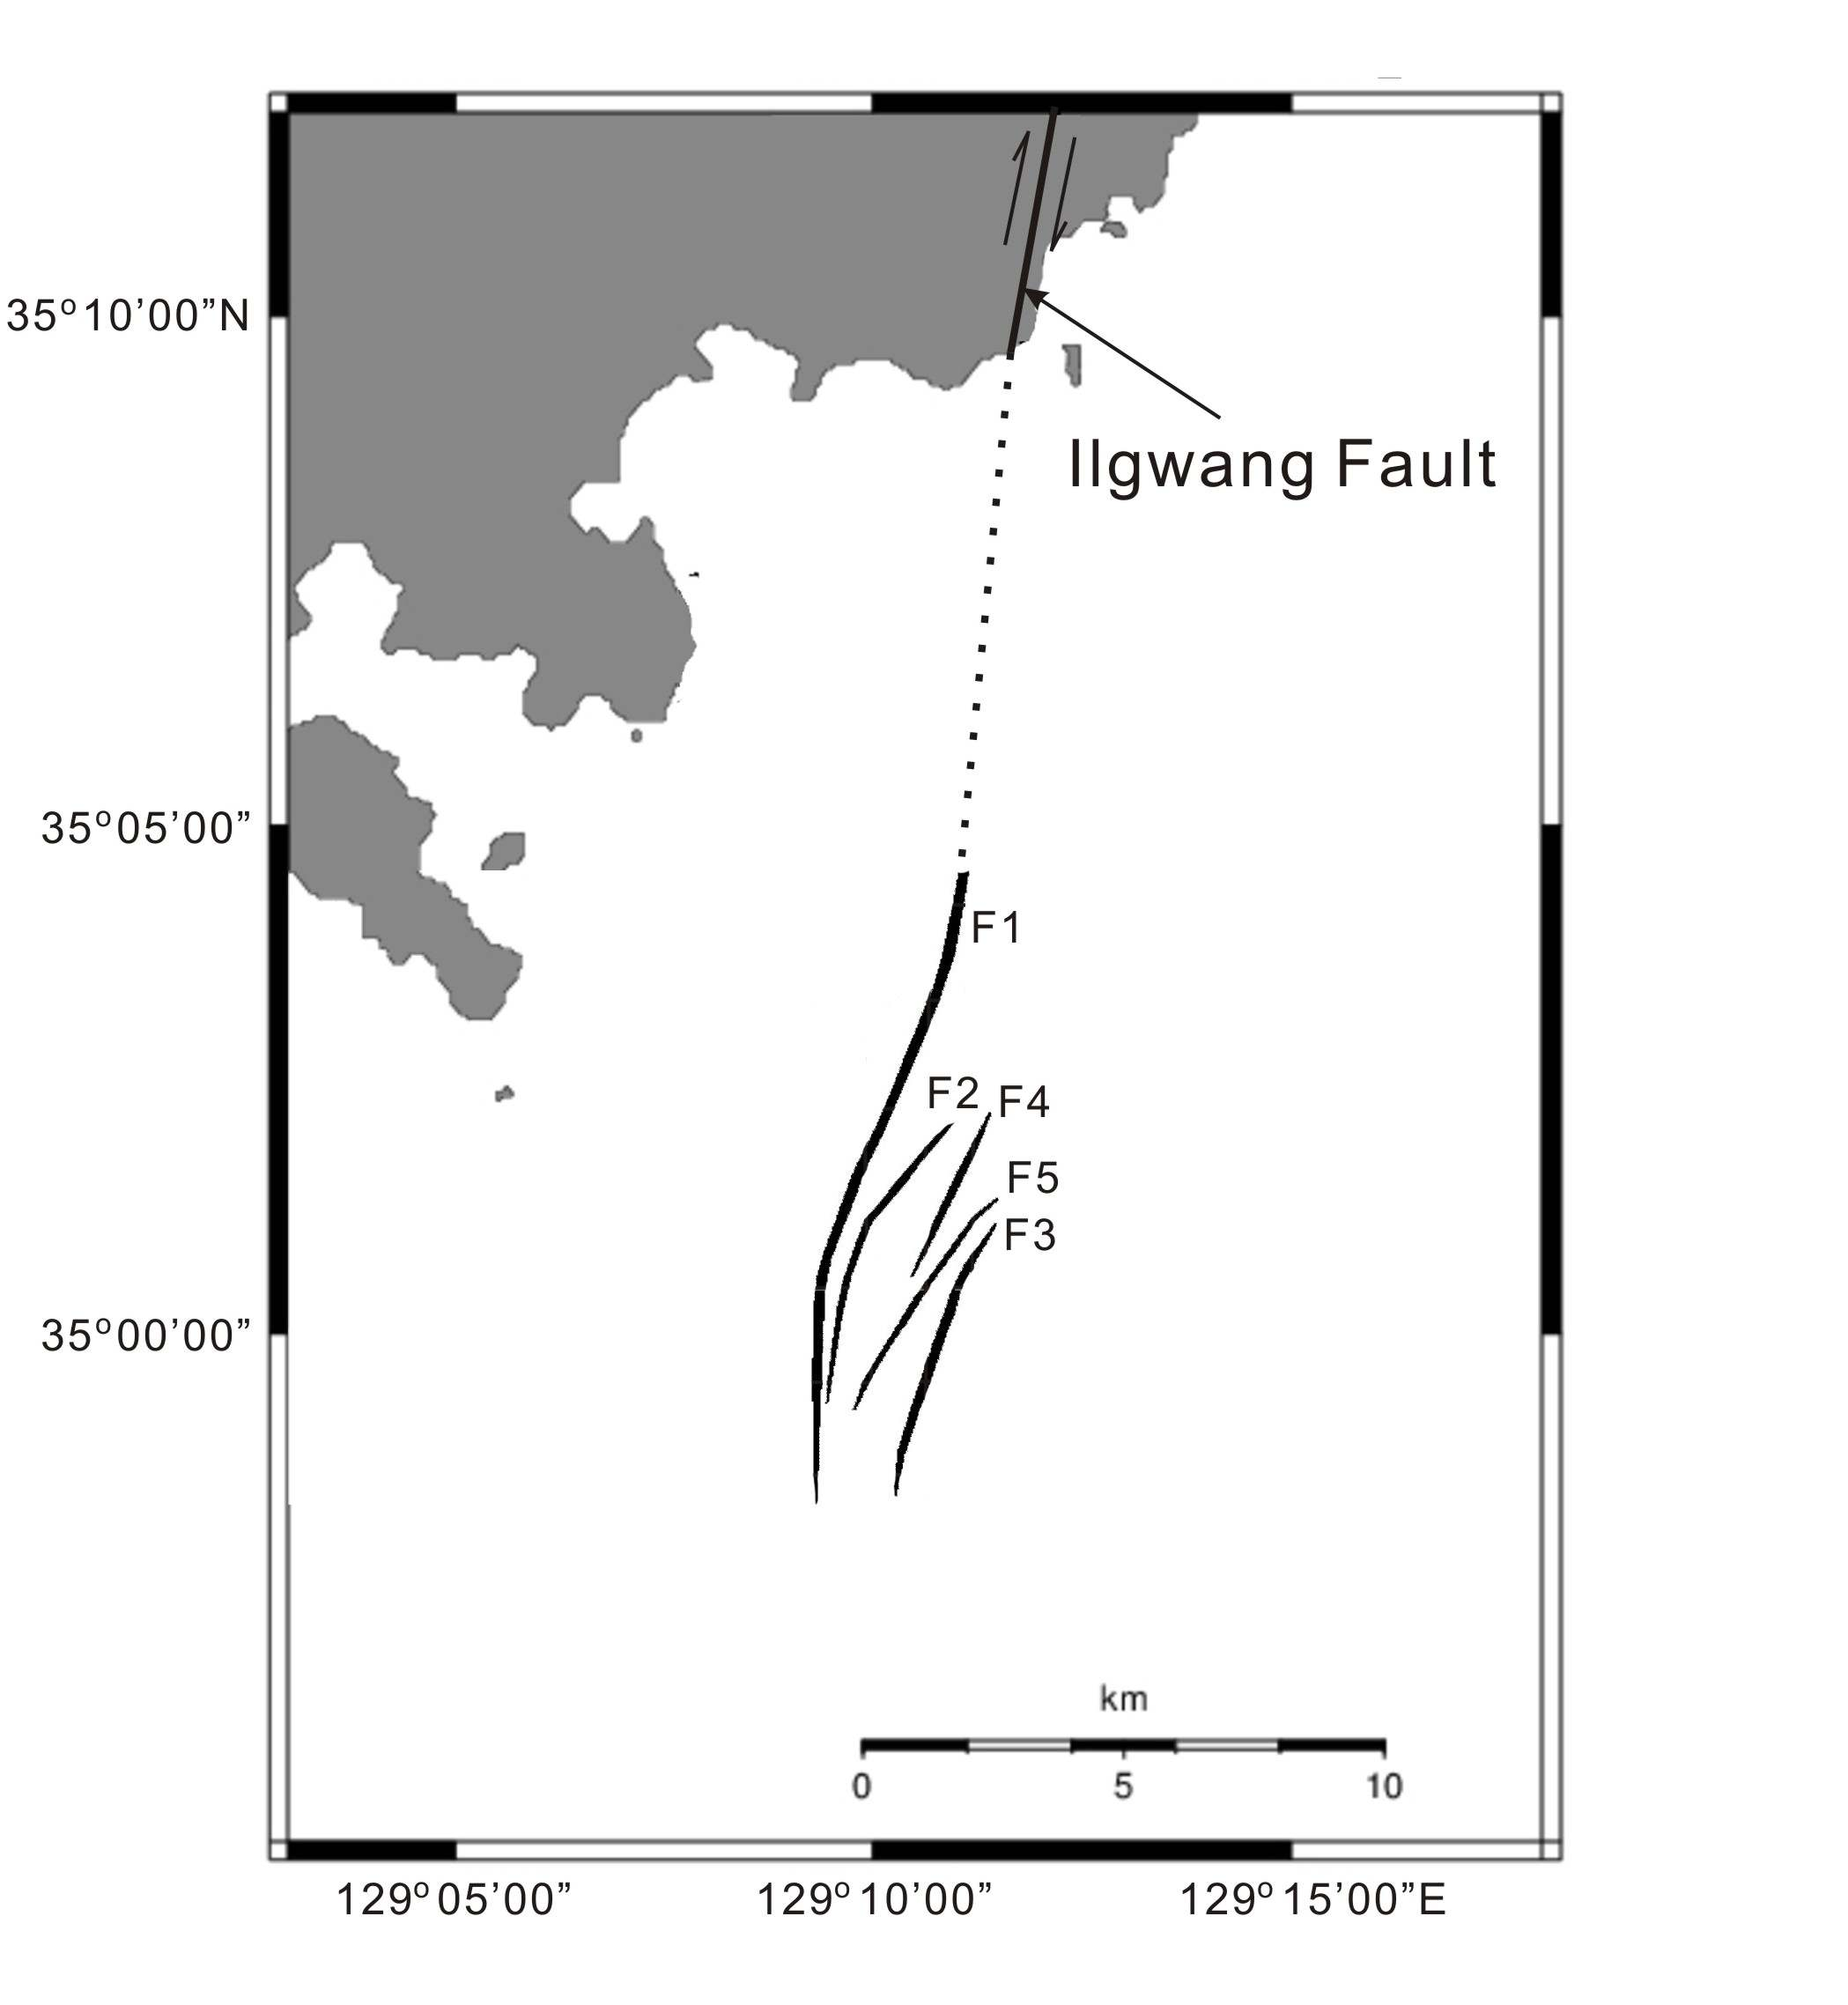 Fig. 3-9. Locations of Quaternary faults offshore the southeastern Korean Peninsula.